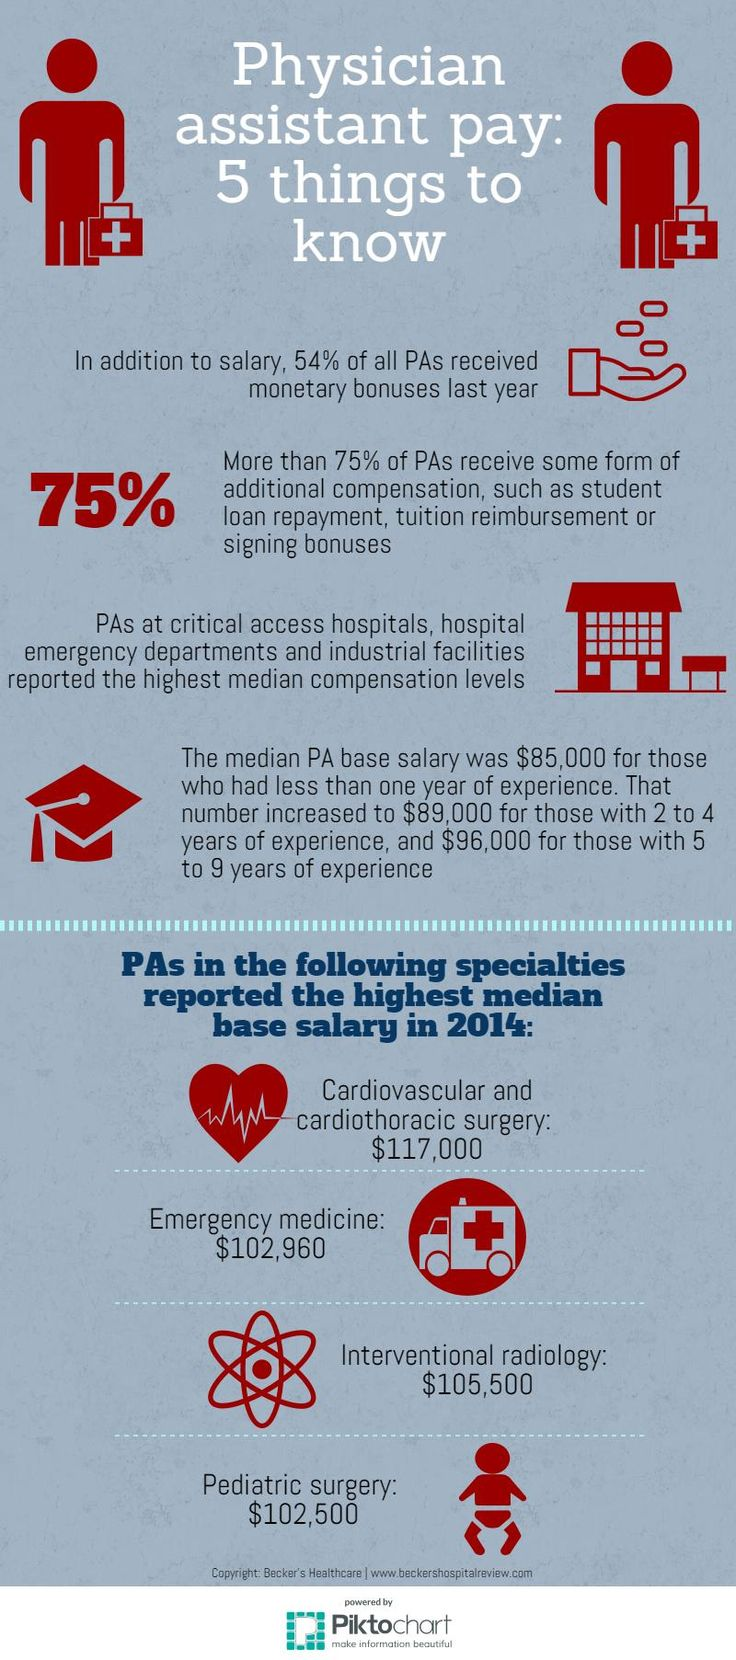 5 things to know about physician assistant pay